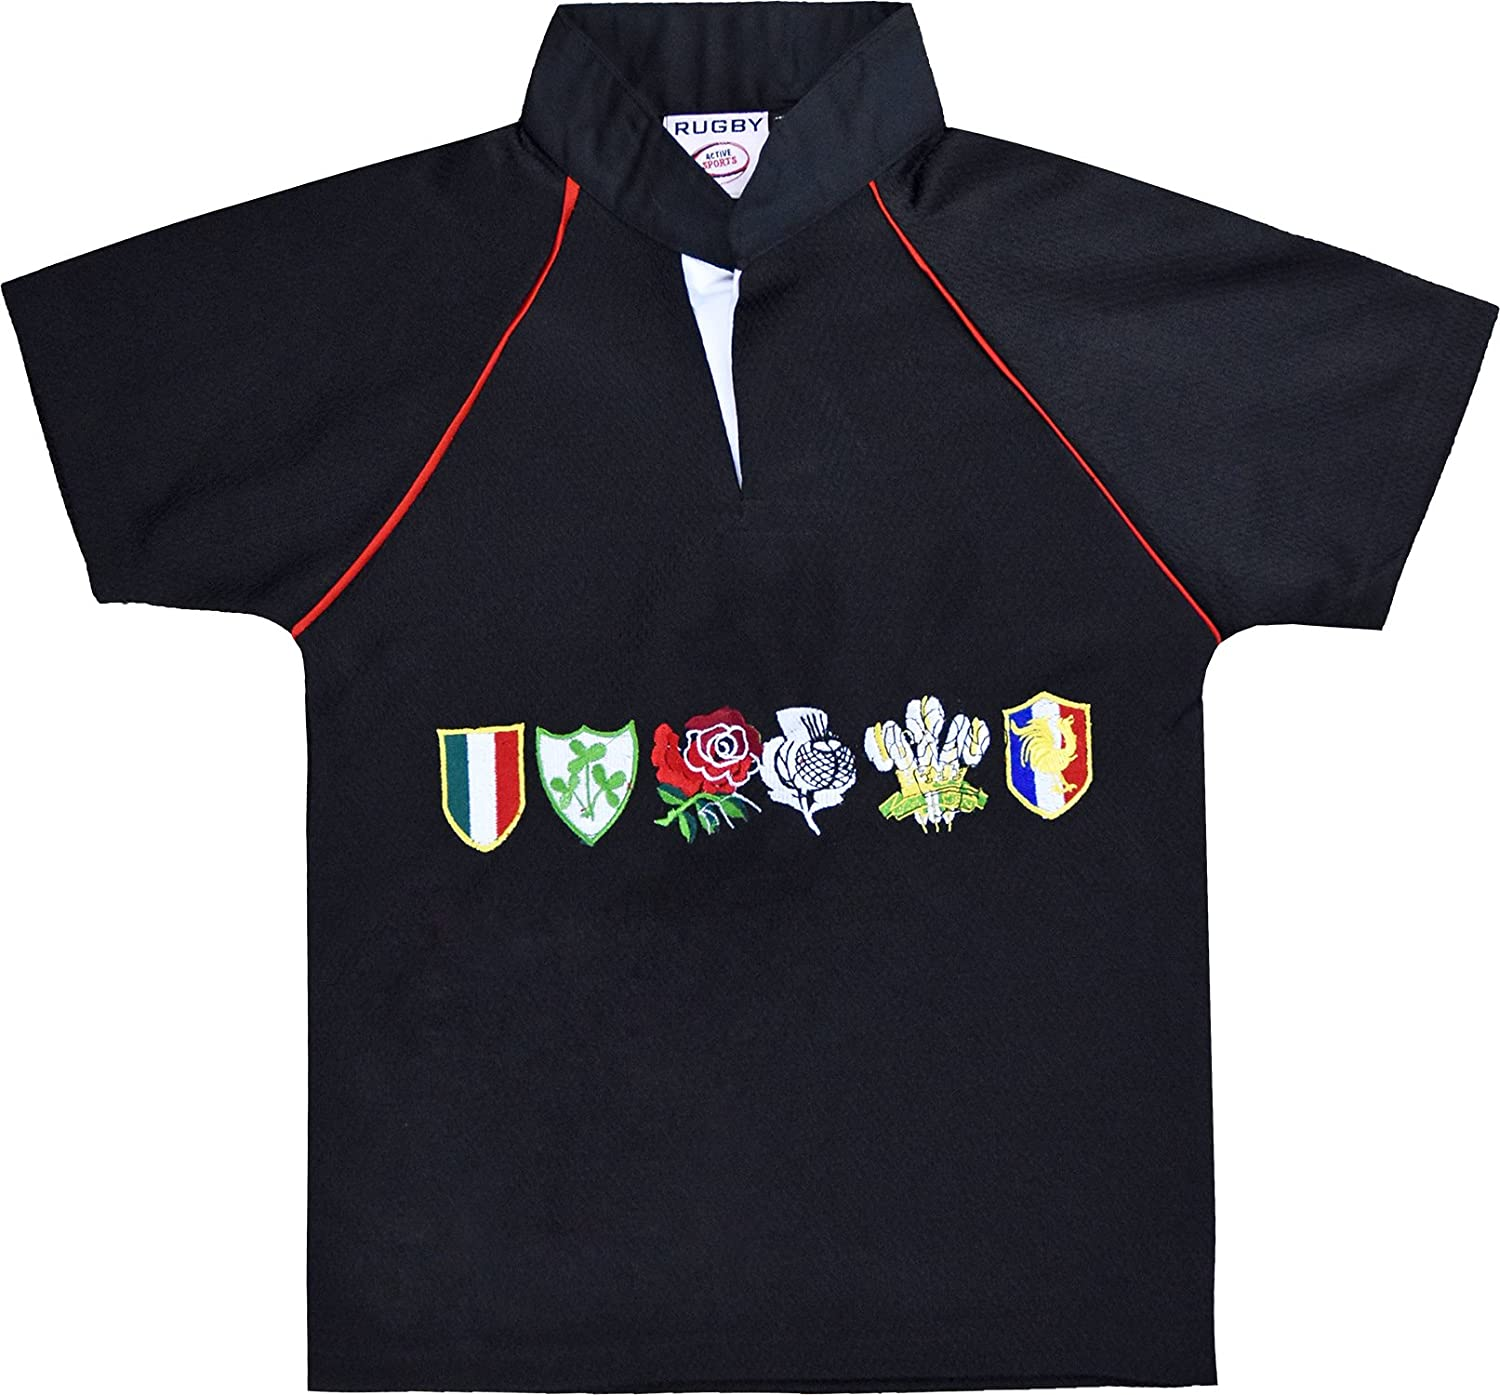 Activewear Children 6 Nation Rugby Shirts Size 3/4Y to 11/12 Year (2XL 11/12Y, Black) NMK6NRS01